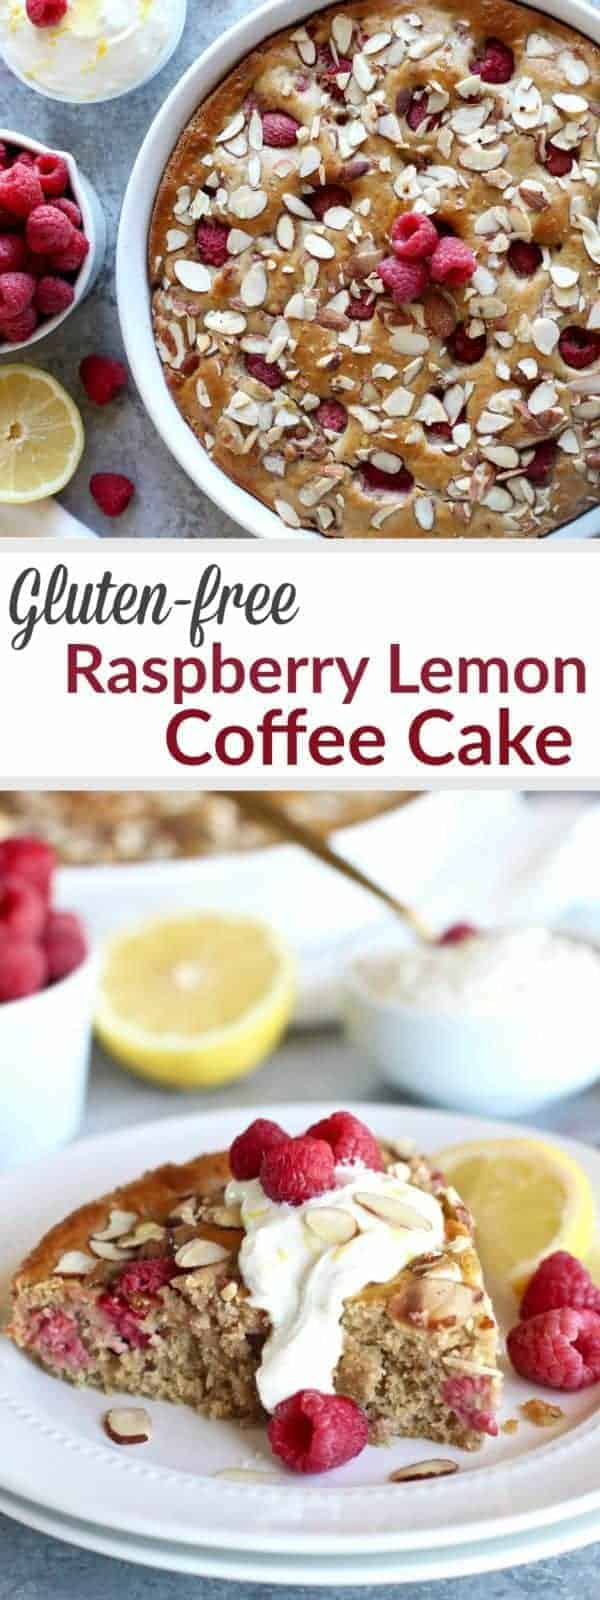 An oh so tasty Gluten-free Raspberry Lemon Coffee Cake topped with a Lemon Sour Cream Sauce is made healthy with wholesome ingredients & no refined-sugars. | The Real Food Dietitians | https://therealfoodrds.com/raspberry-lemon-coffee-cake/